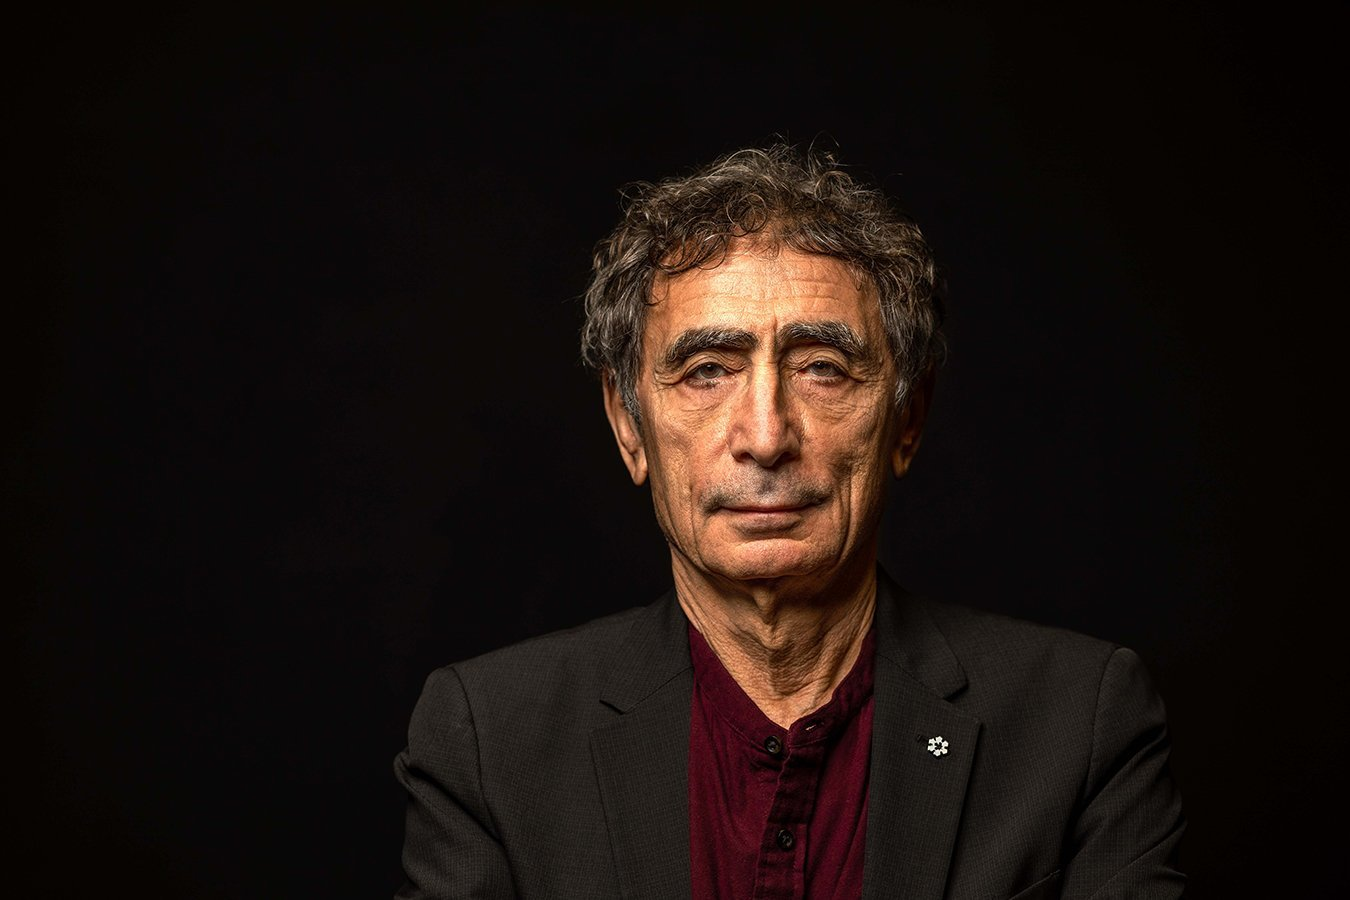 Dr. Gabor Maté Where The Minds Meet